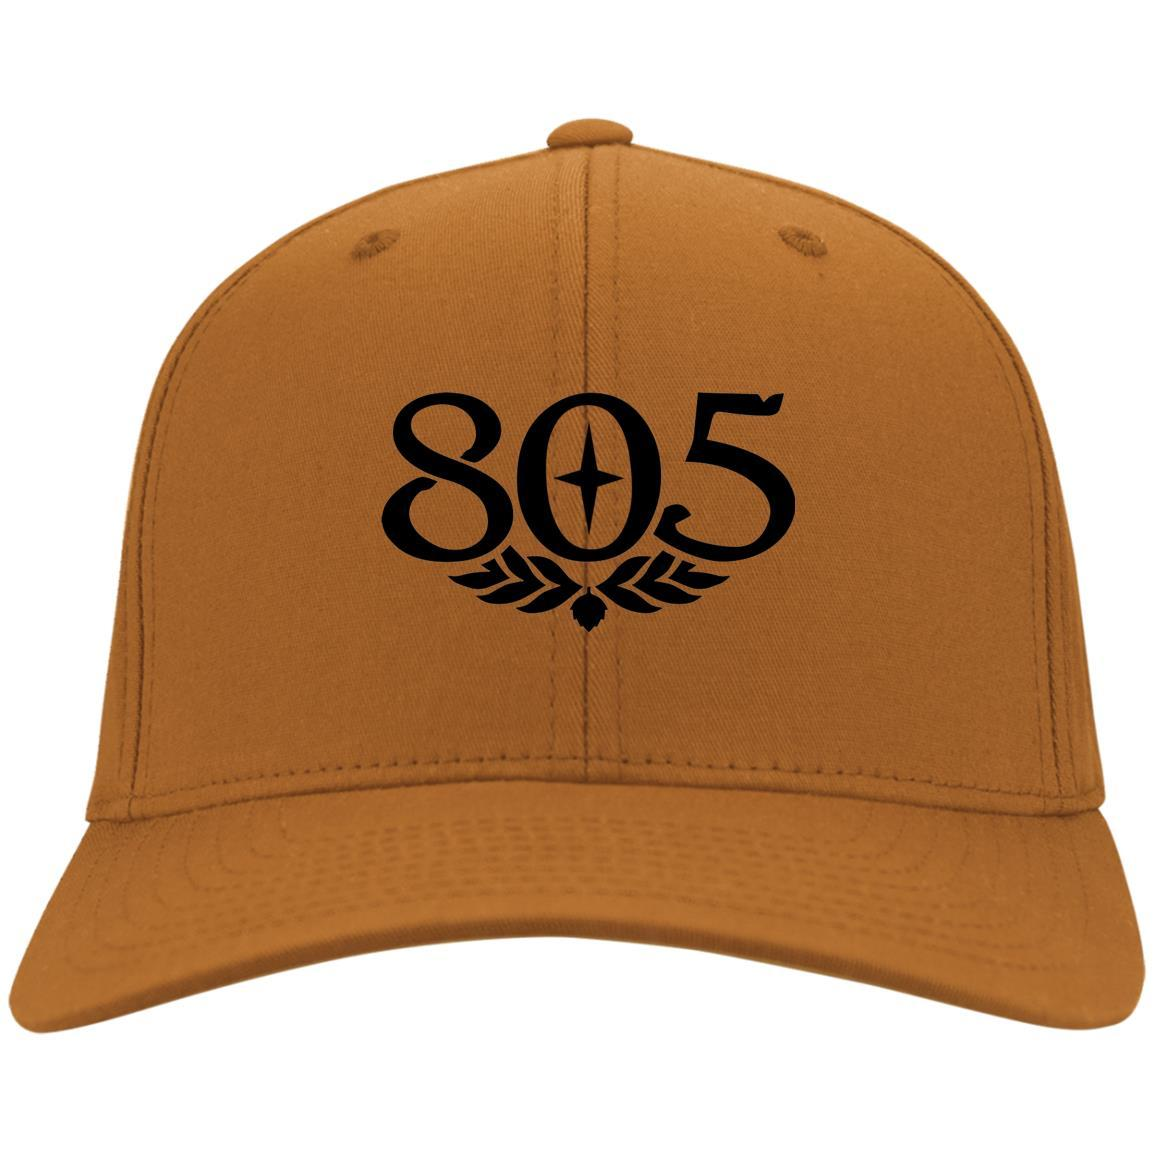 805 Beer Black - Port & Co. Twill Cap Texas Orange